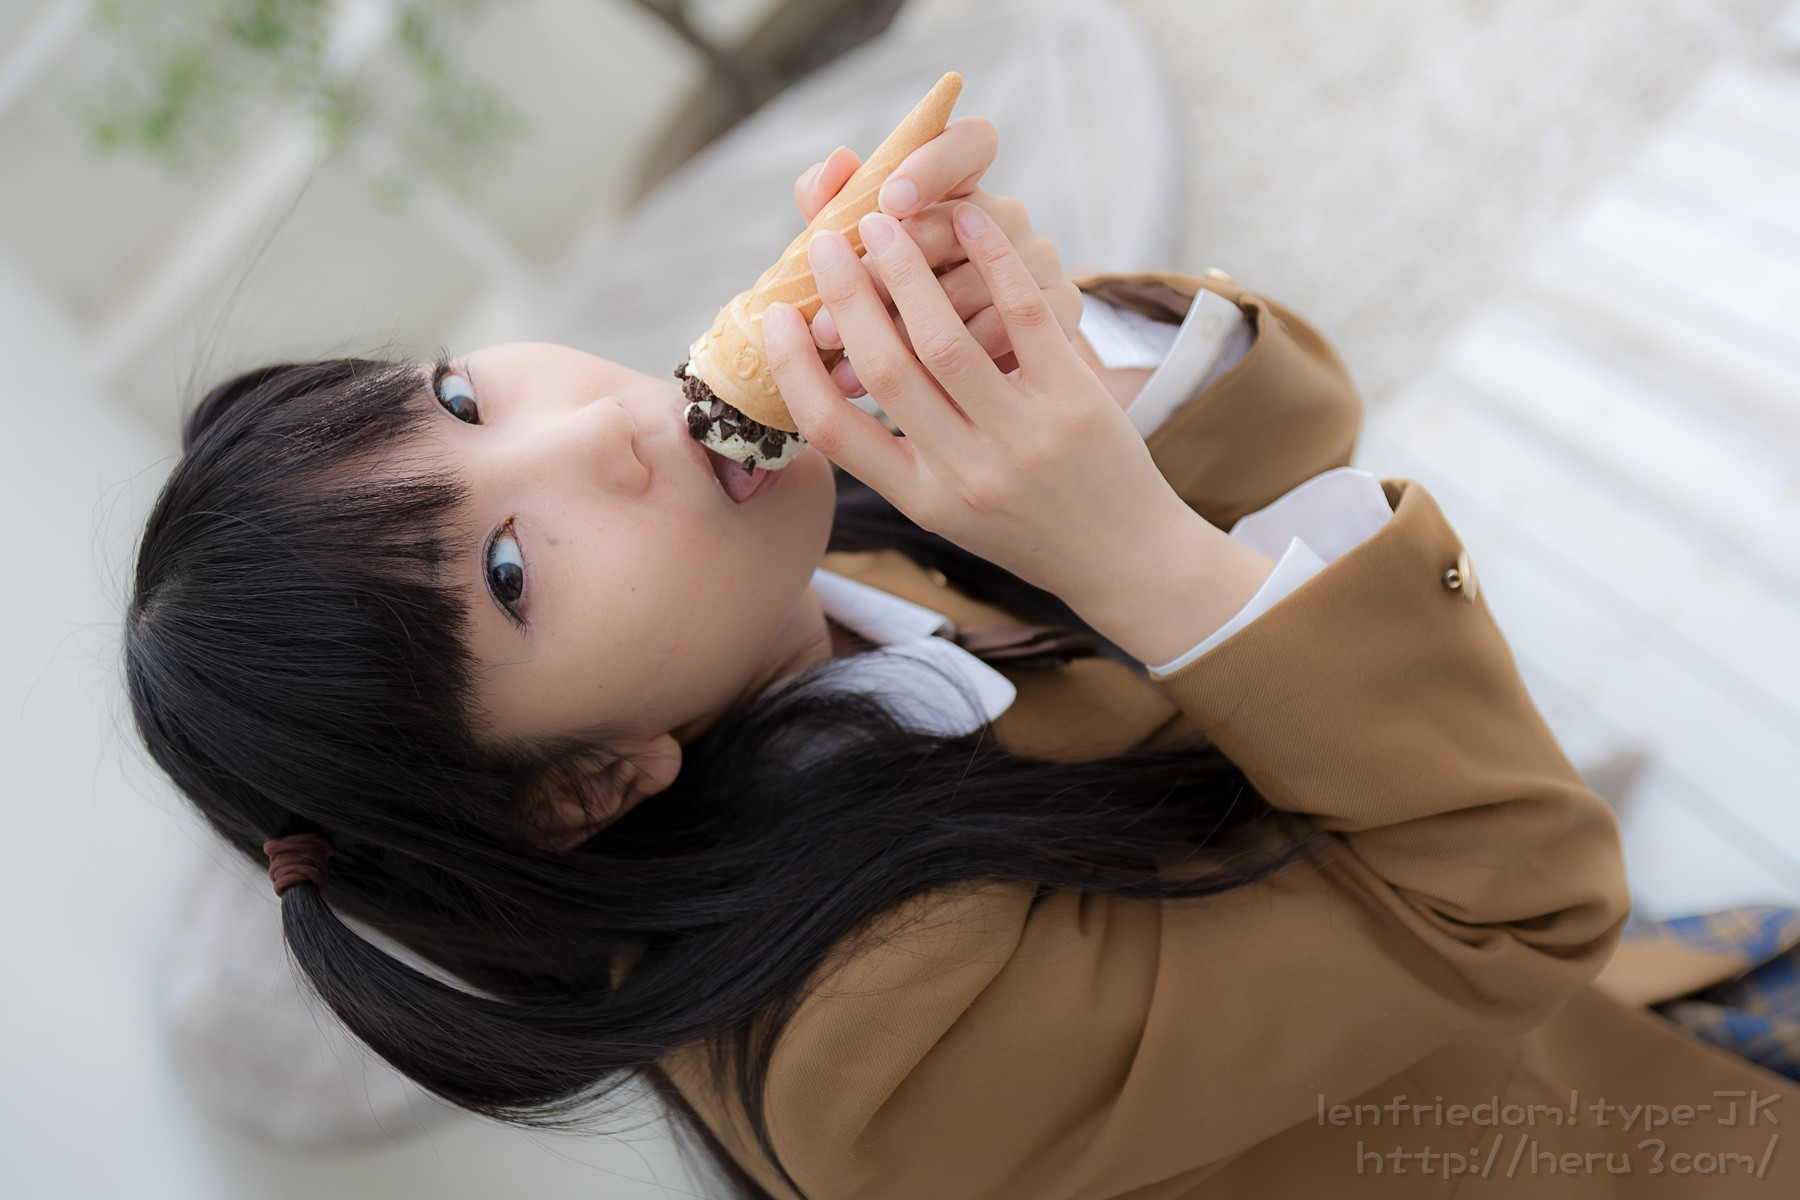 woman cosplay food ice HD Wallpaper